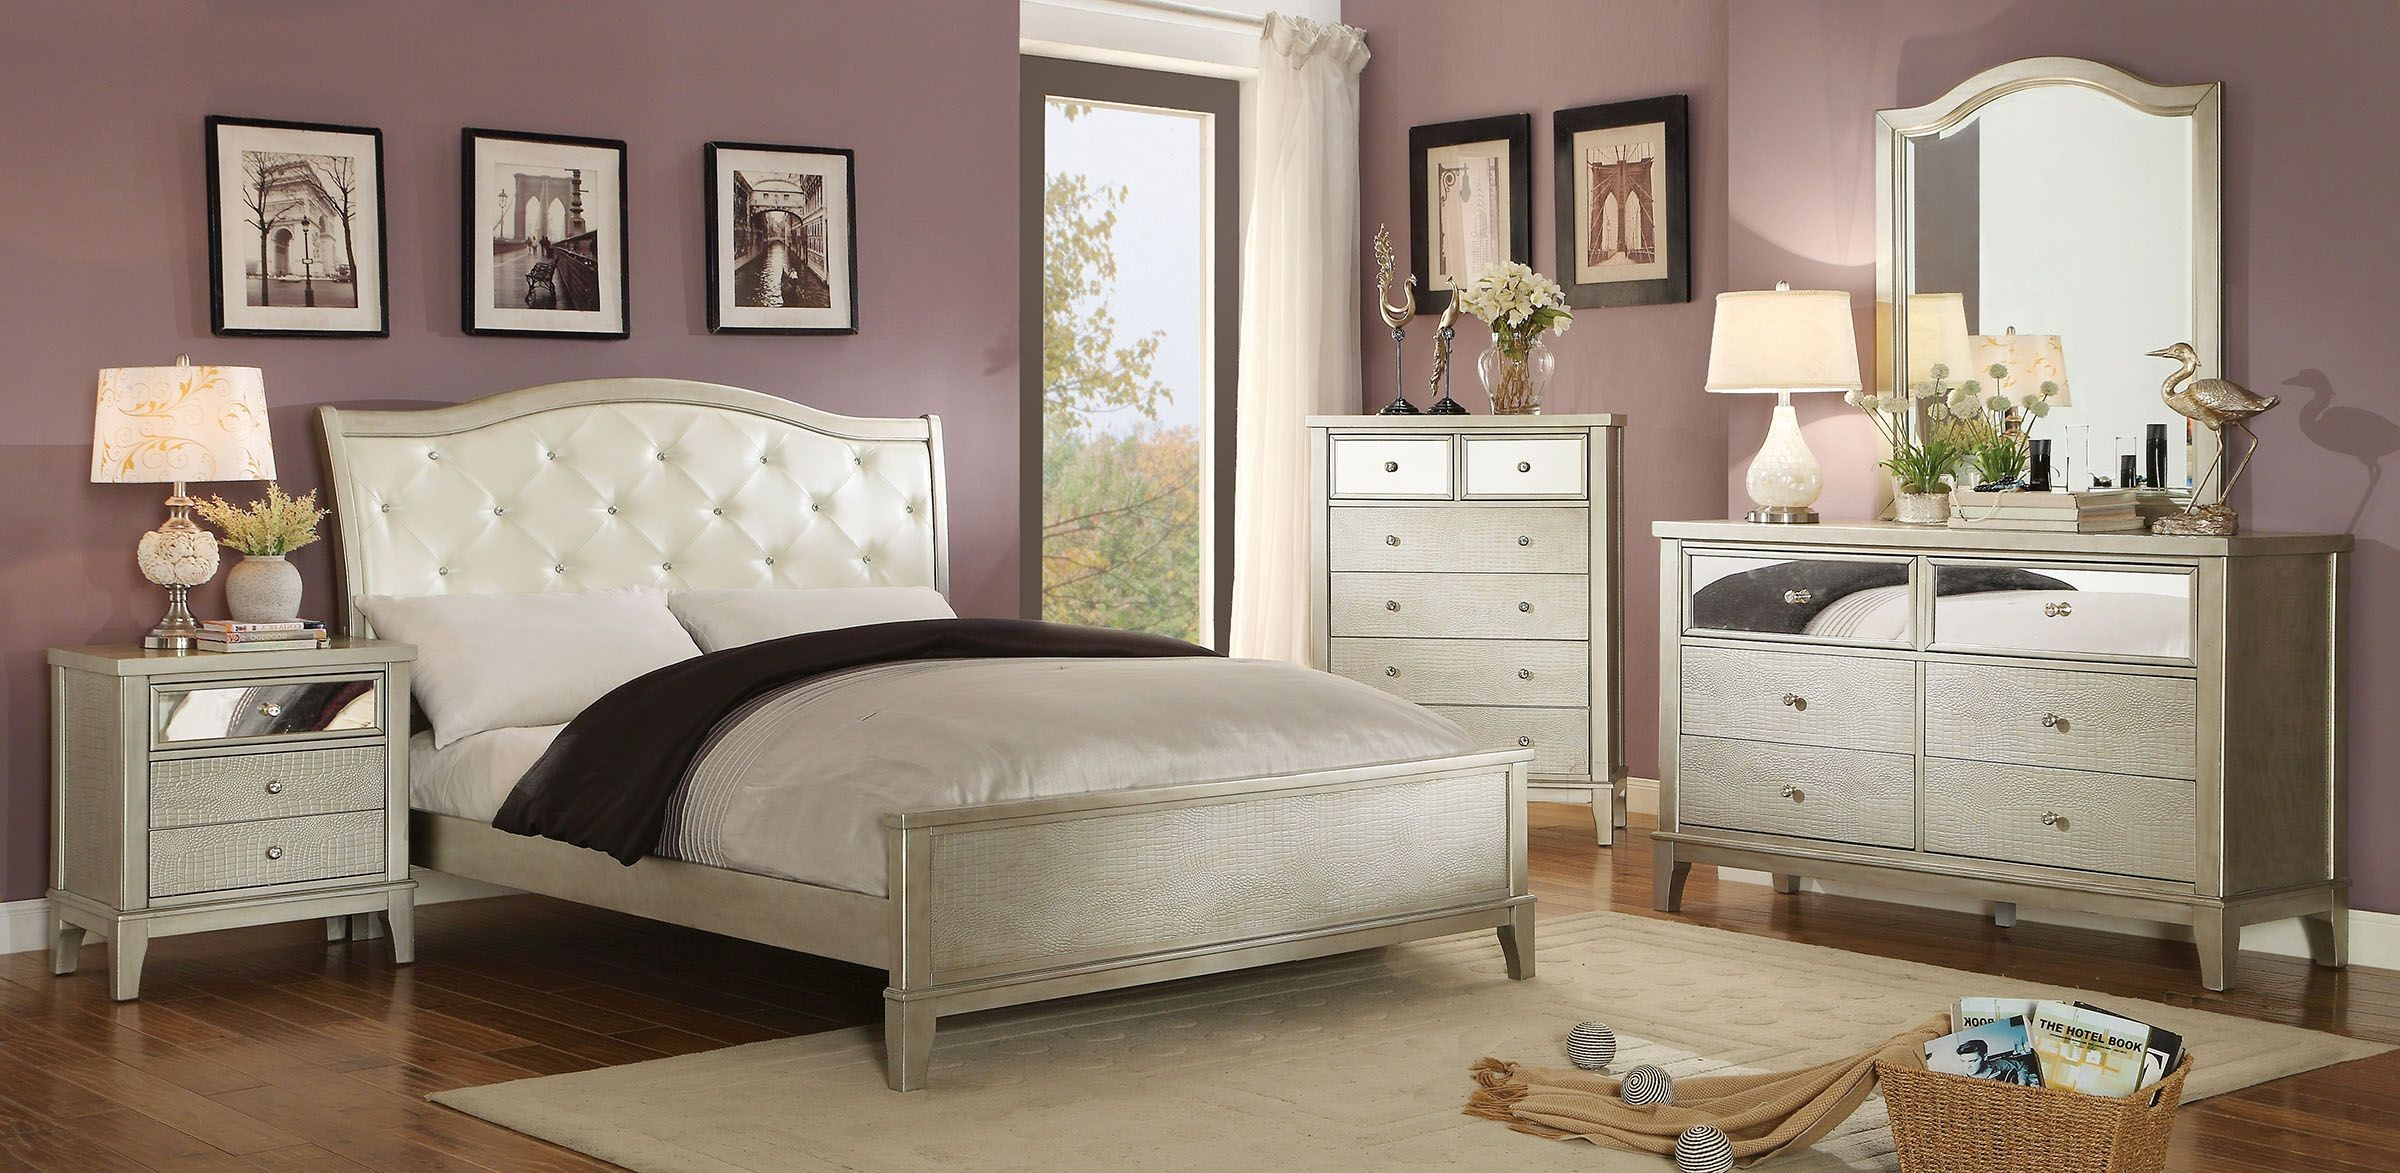 bedroom furniture bedroom sets adeline silver upholstered bedroom